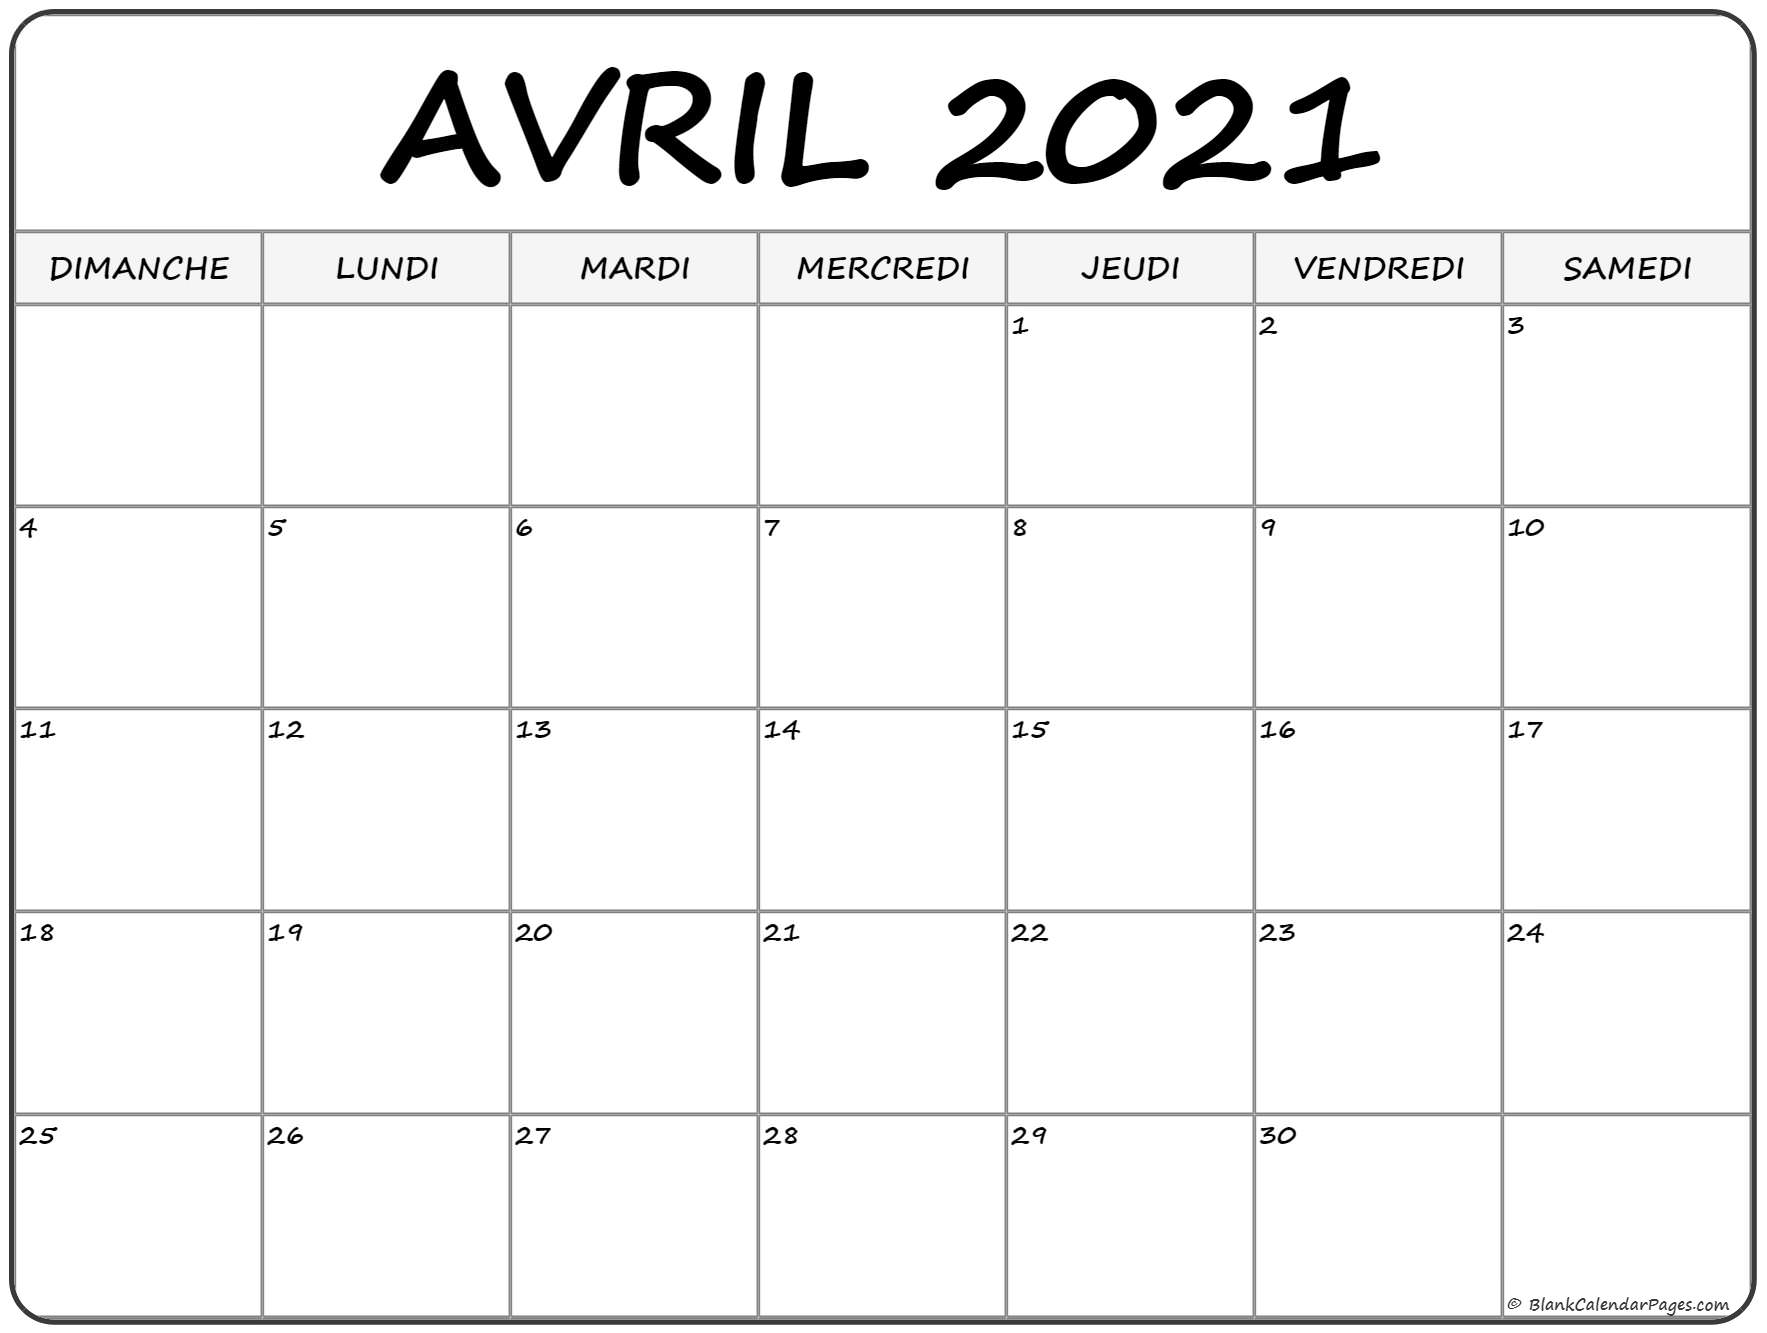 Calendrier Mois Avril 2021 avril 2021 calendrier imprimable | calendrier gratuit